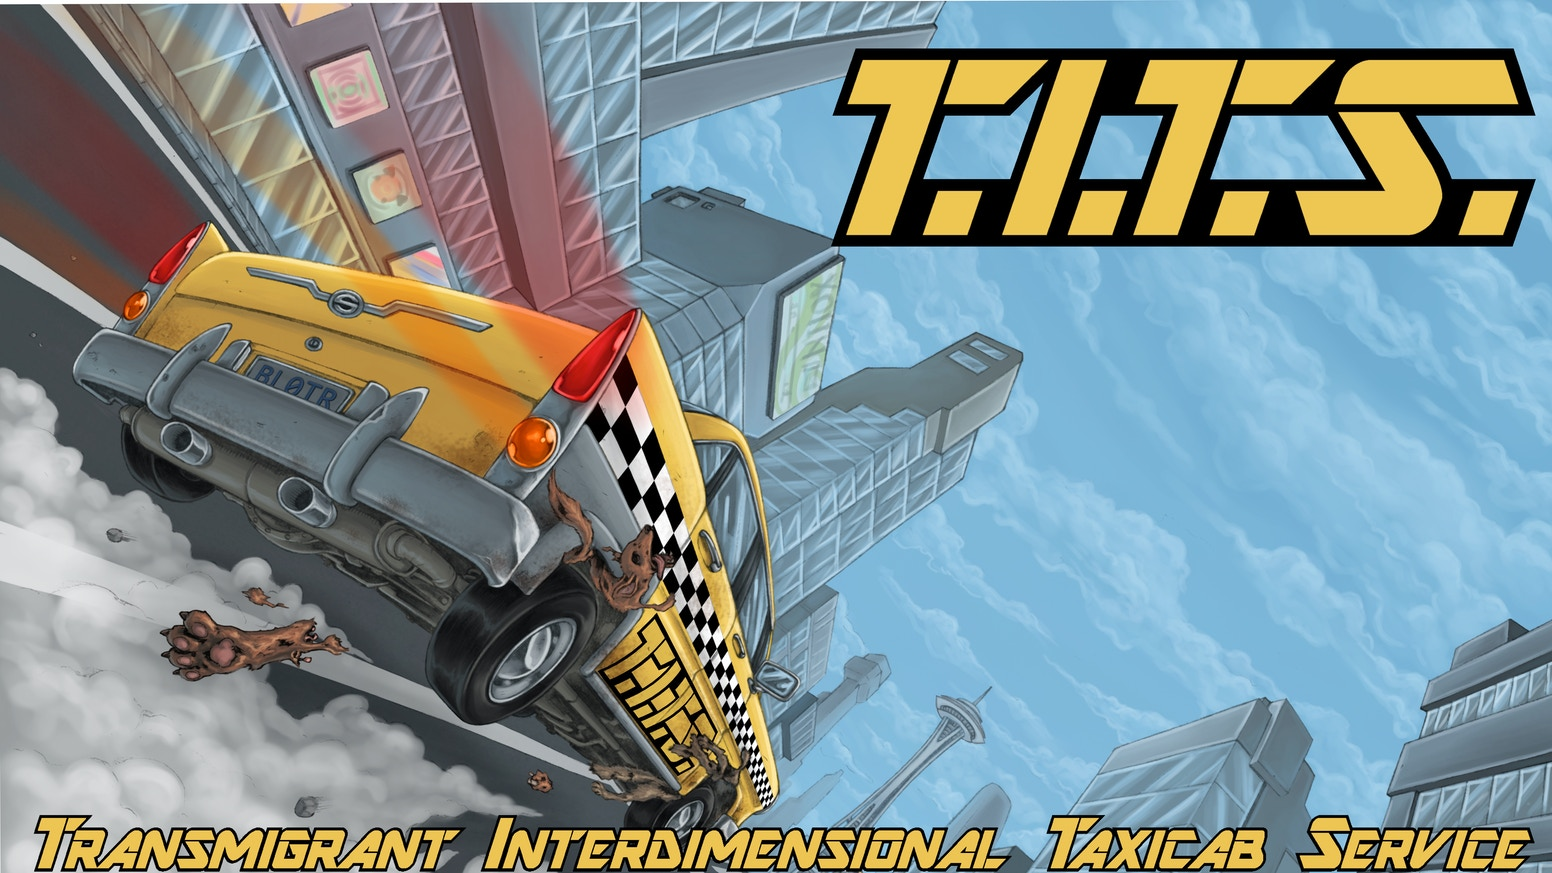 T.I.T.S. is a fantastic, witty, color comic book series that blends elements of comedy, action, and sci-fi.